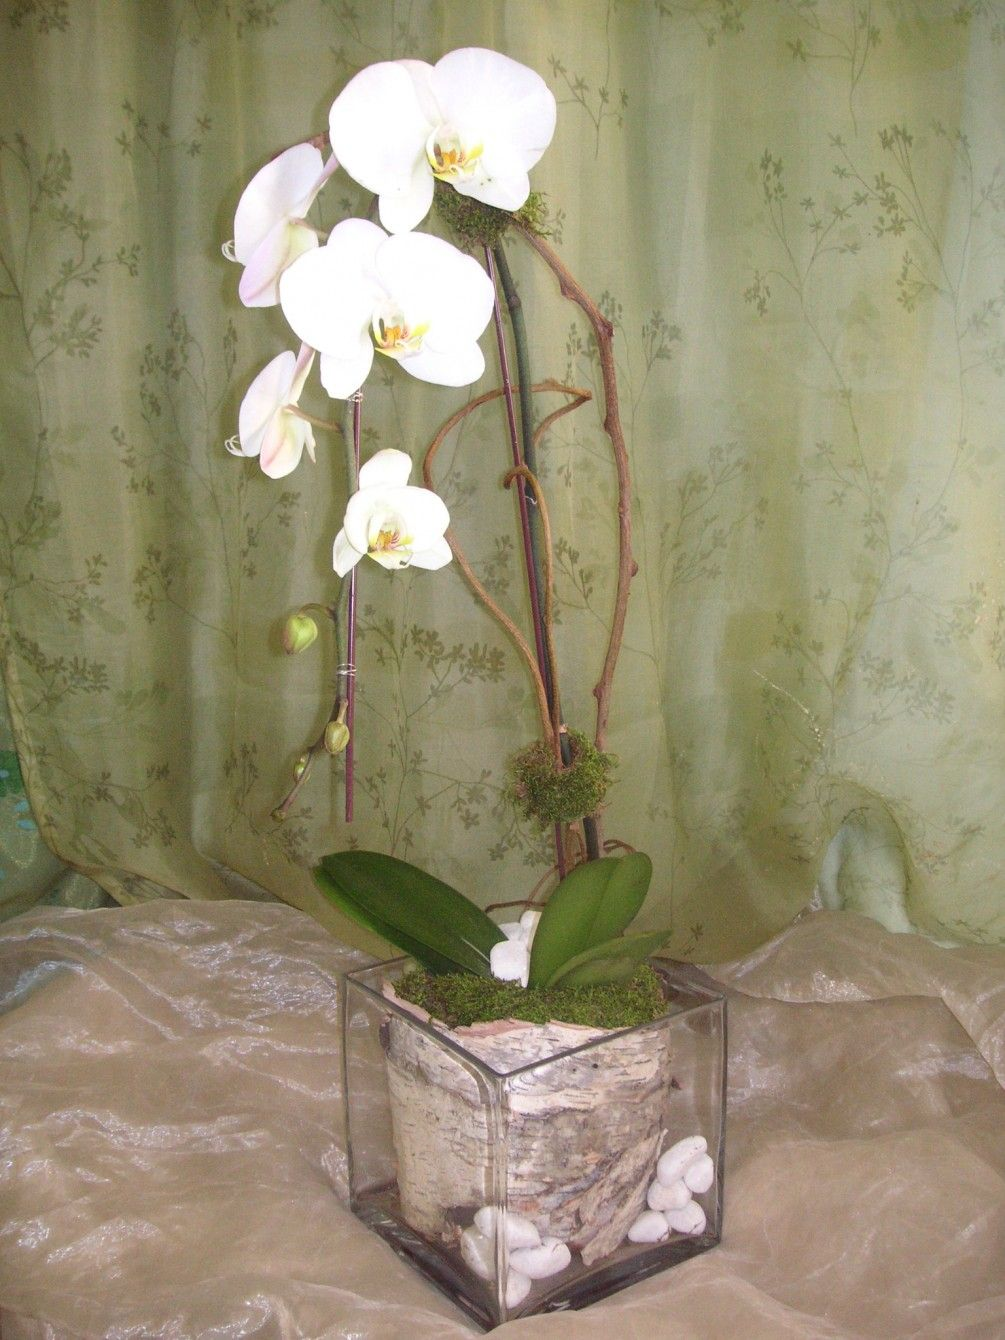 White phalaenopsis orchid plant in glass cube with birch bark, white rocks, and kiwi branches $115.00